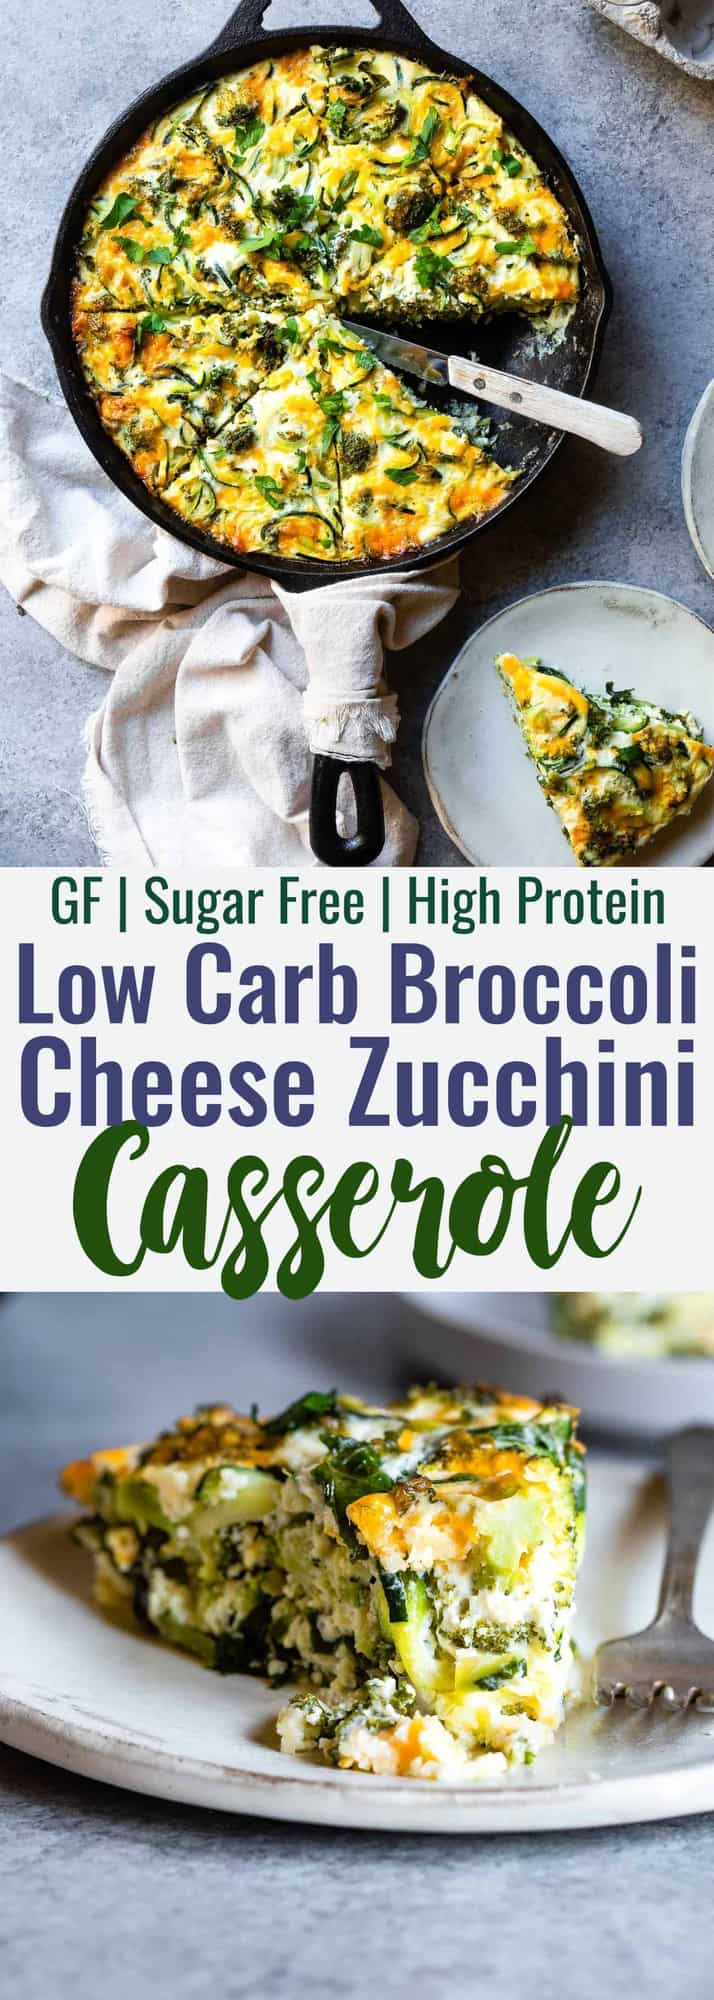 Baked Kale and Broccoli Cheesy Zucchini Casserole - This low carb, gluten free Healthy Baked Cheesy Zucchini Casserole is a quick, easy and healthy dinner that even your kids will love! Protein packed, only 1 Freestyle point and 167 calories too! | #Foodfaithfitness | #Lowcarb #Keto #Glutenfree #Spiralized #Healthy